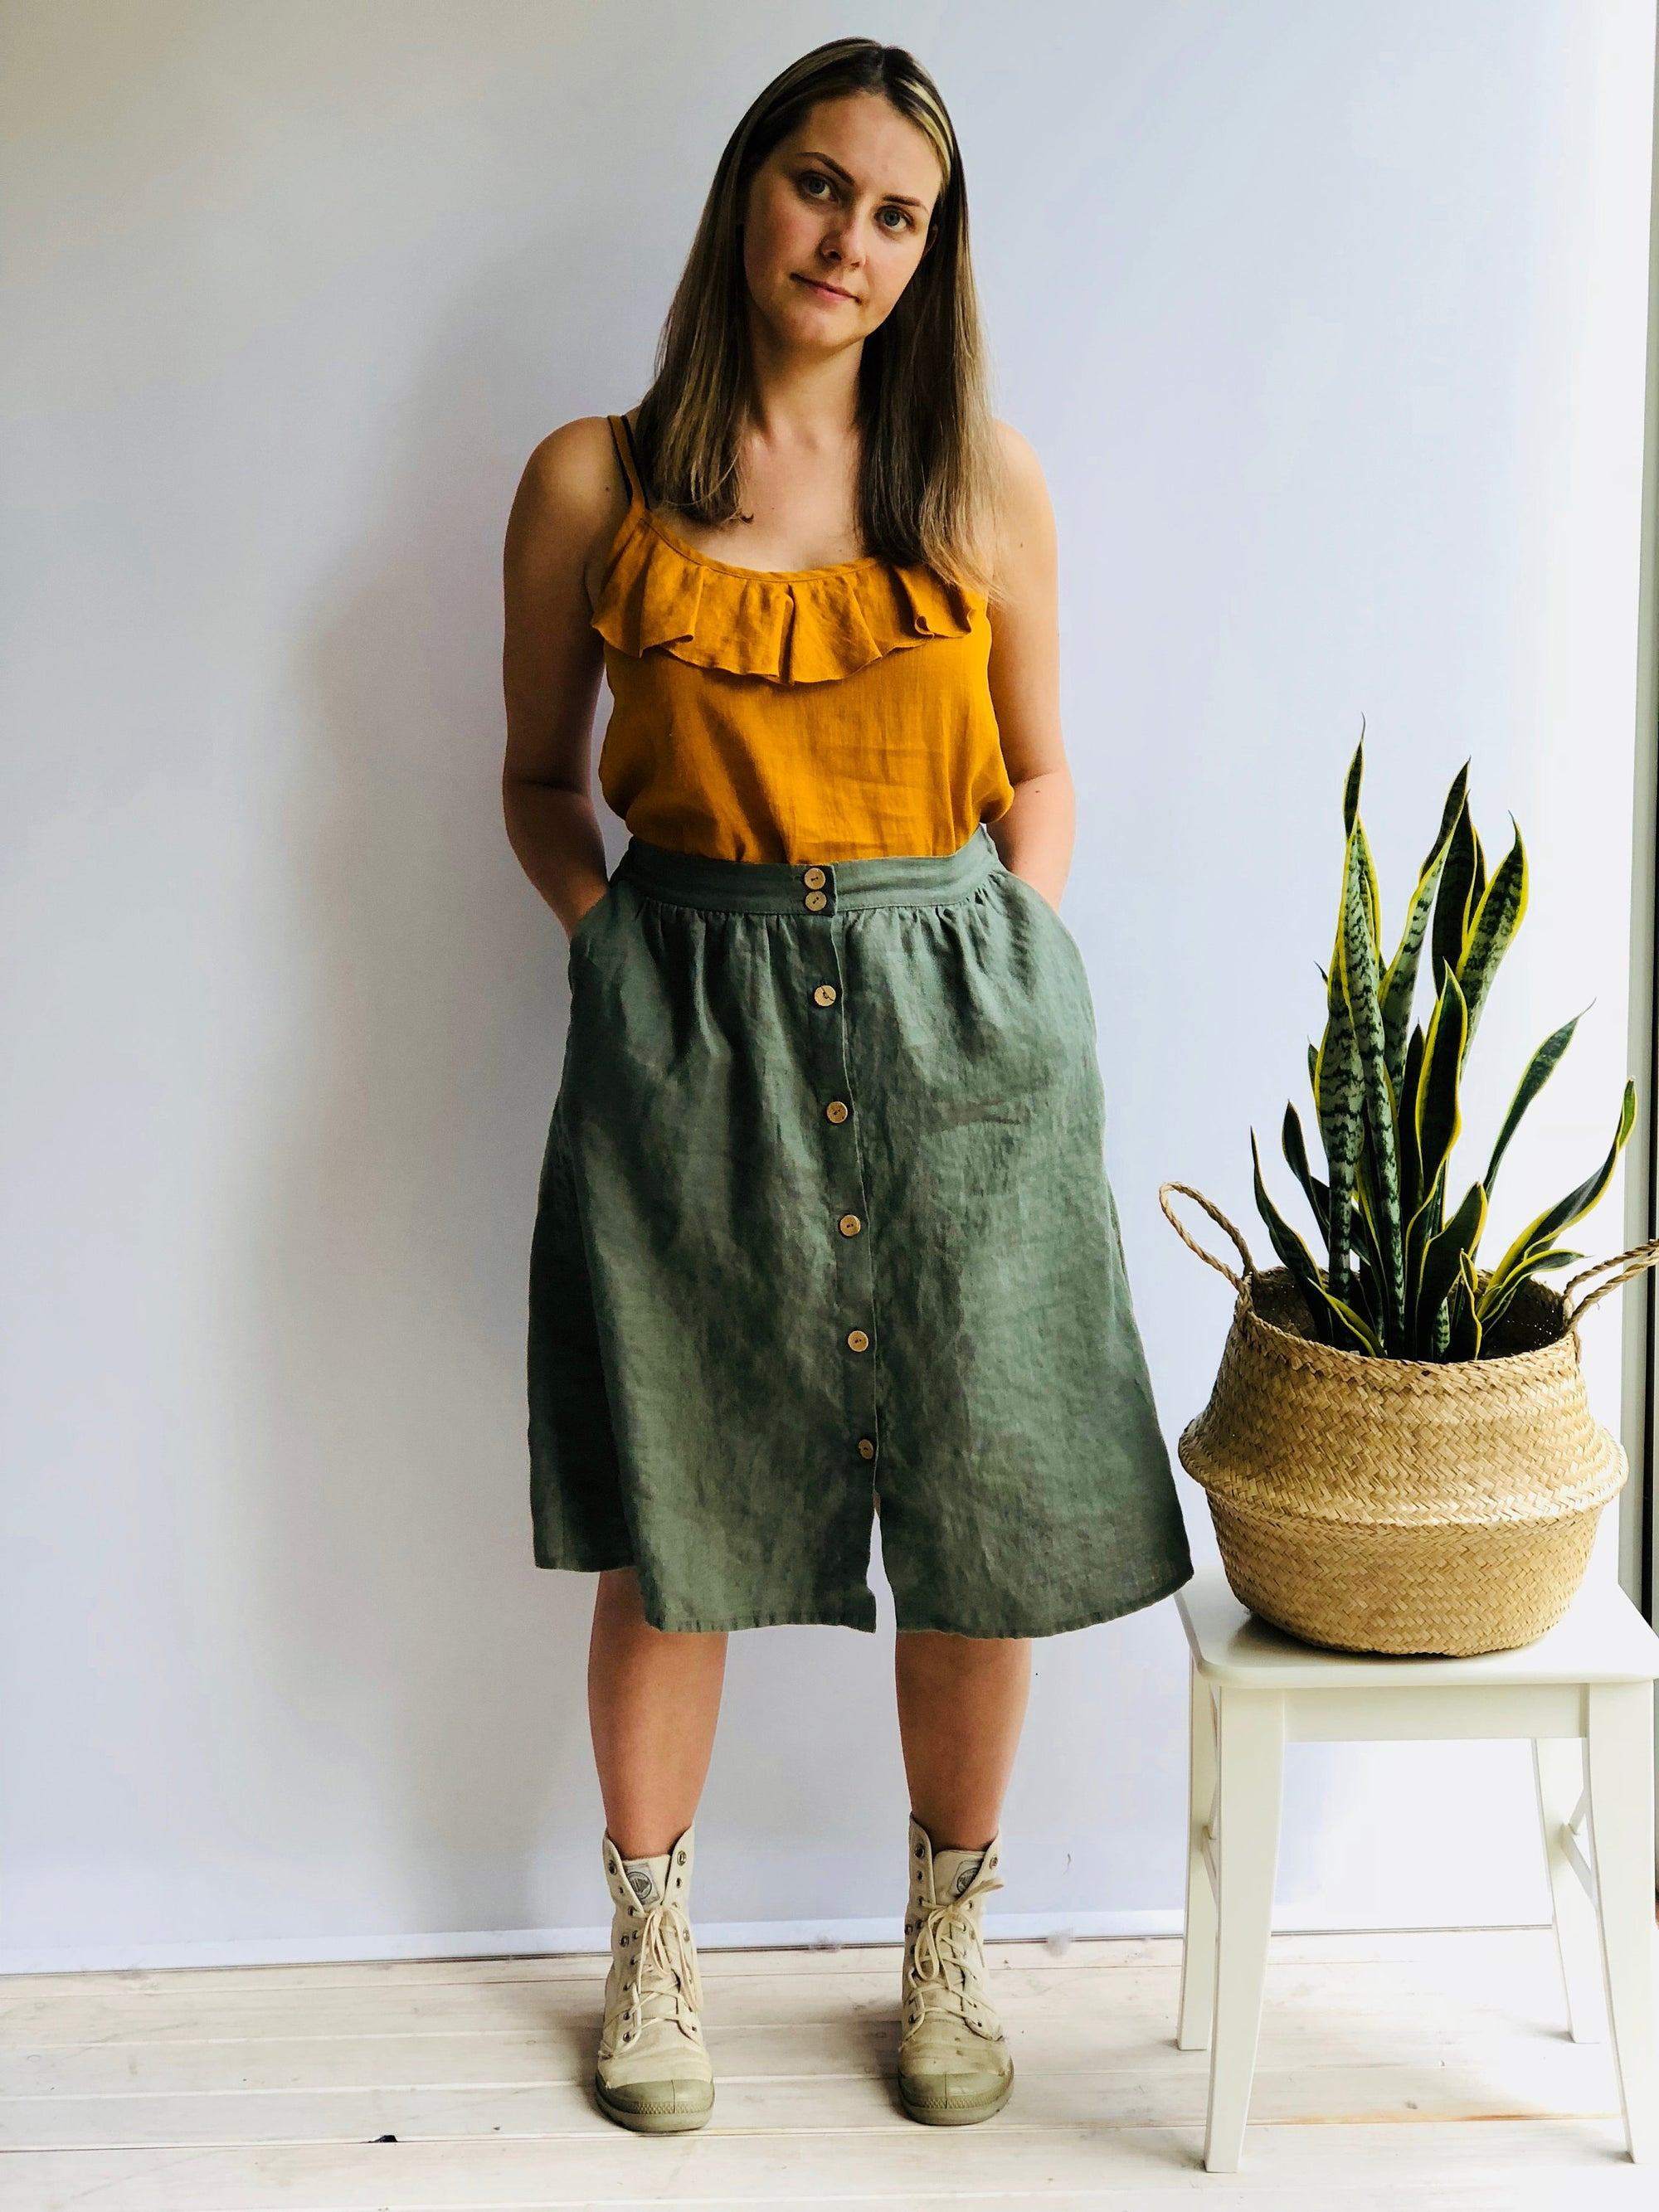 Linen Skirt with Buttons, Boho Skirt, Midi Skirt, Skirt with Pockets, Womens Skirts, Linen skirt Midi, Skirts for Women, Linen Skirt Pockets